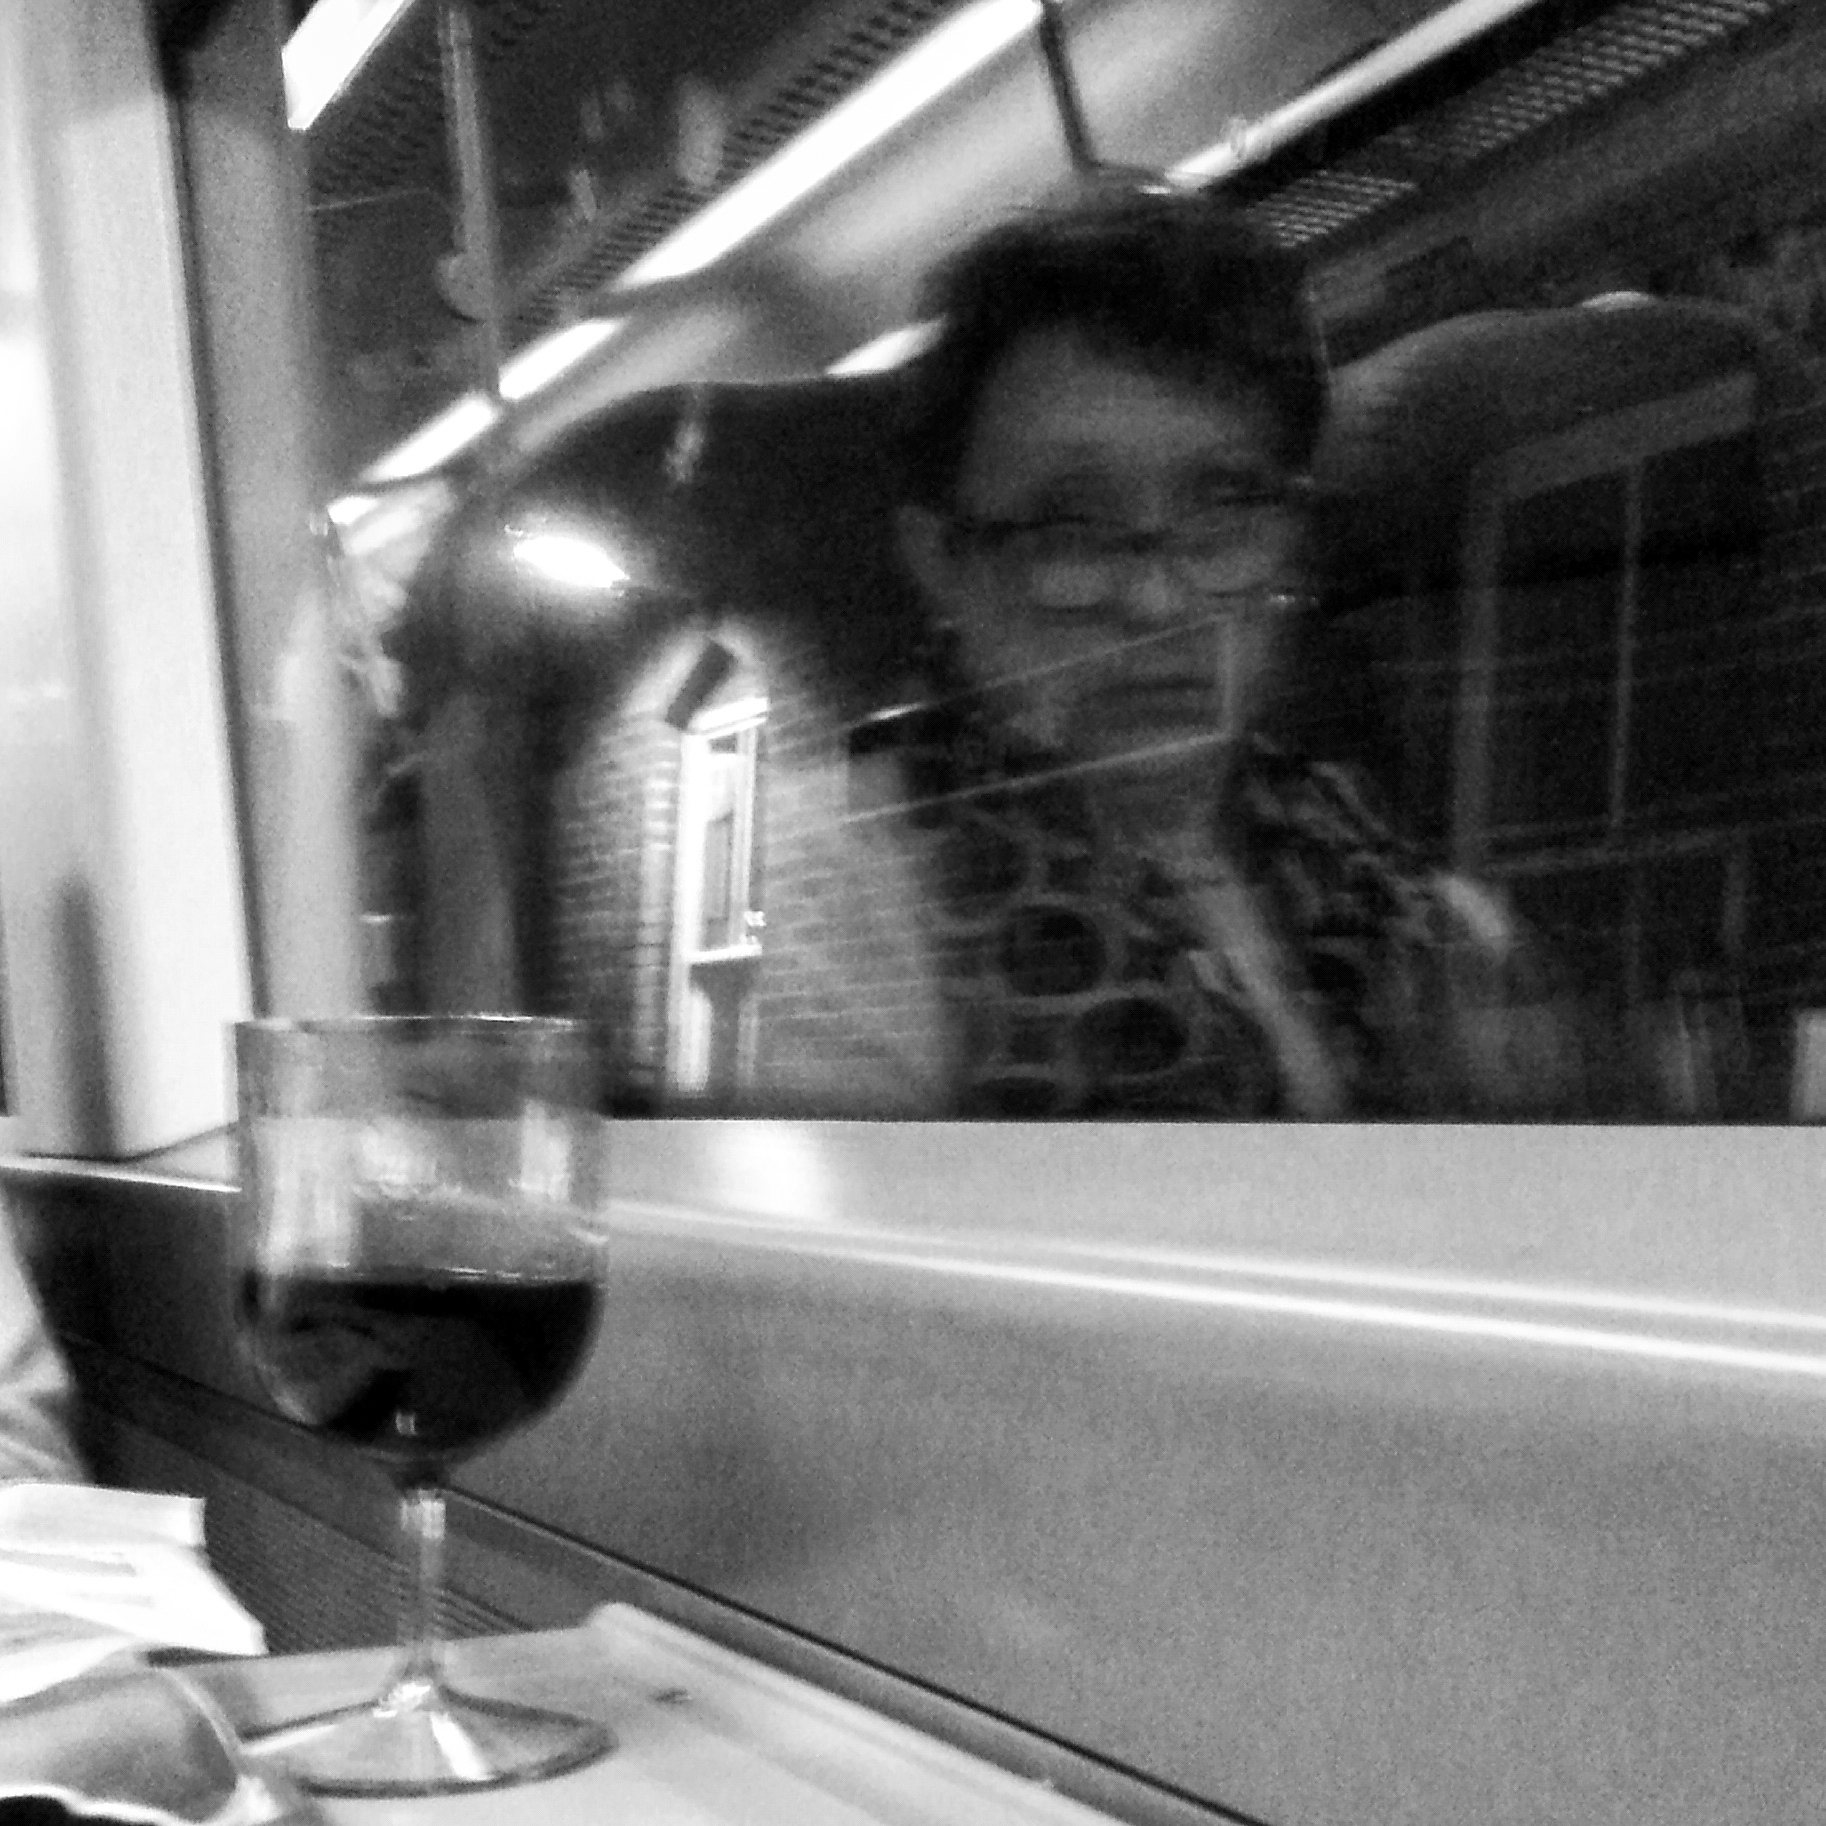 Commute 19 - Post work red wine